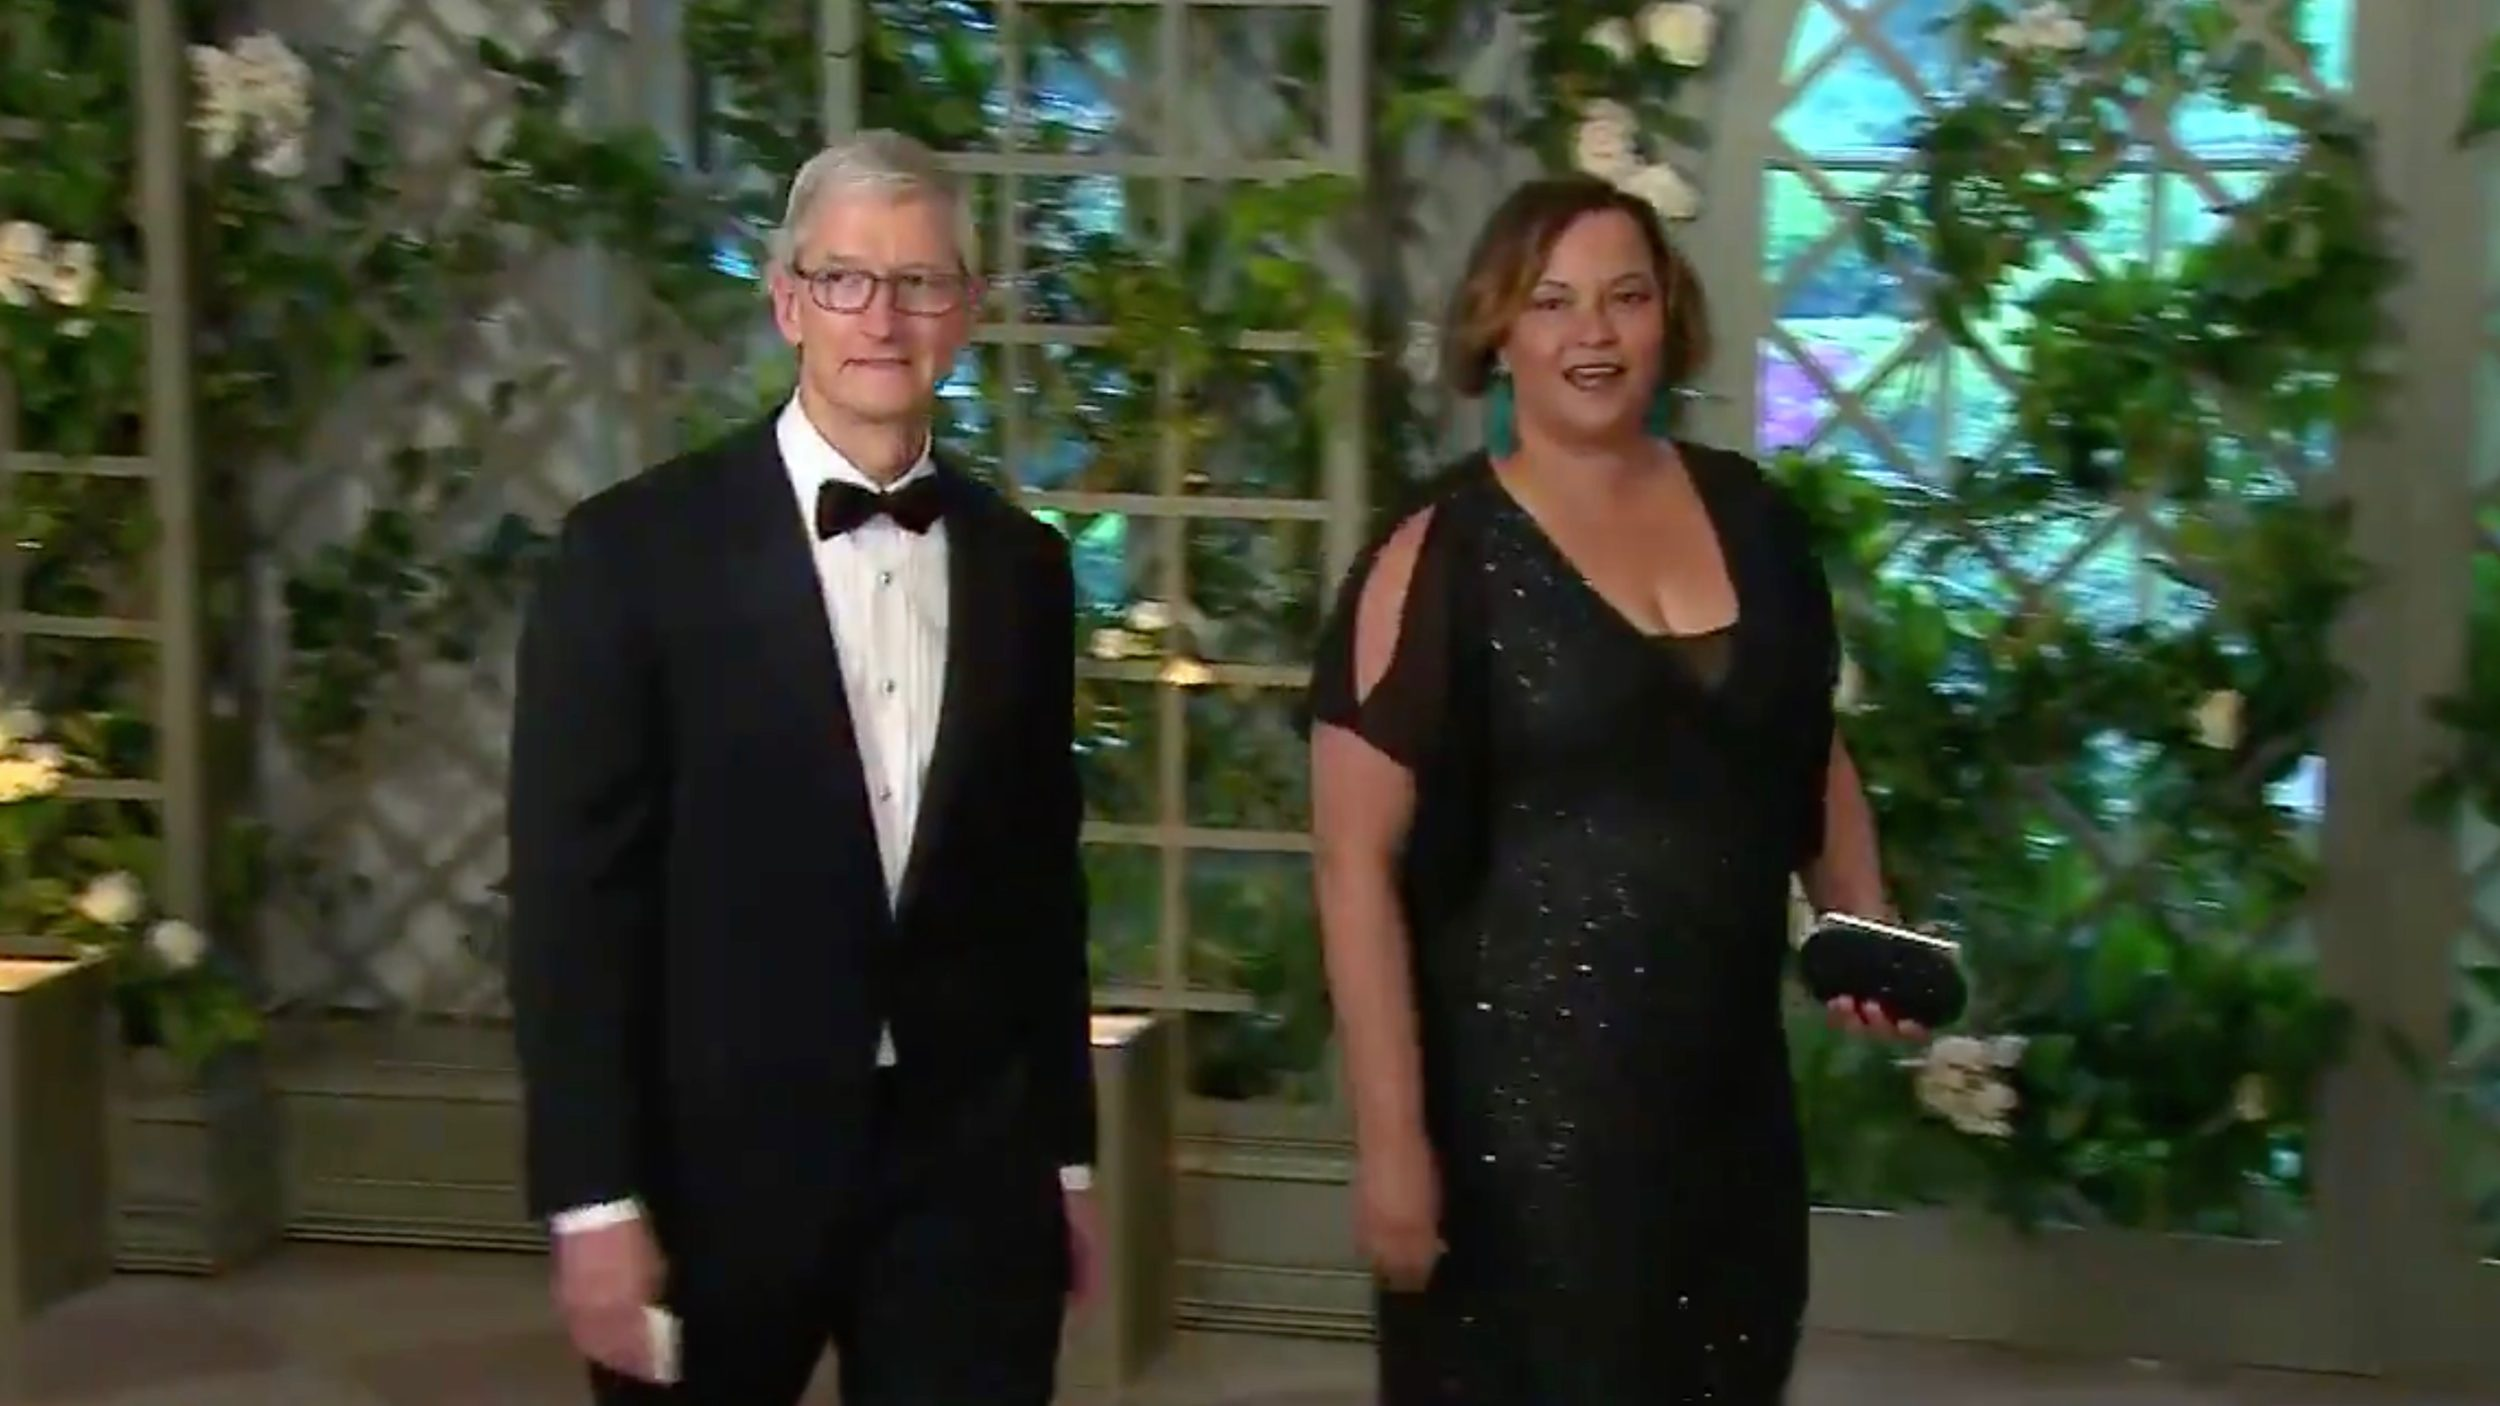 Apple CEO Tim Cook Attends State Dinner at White House